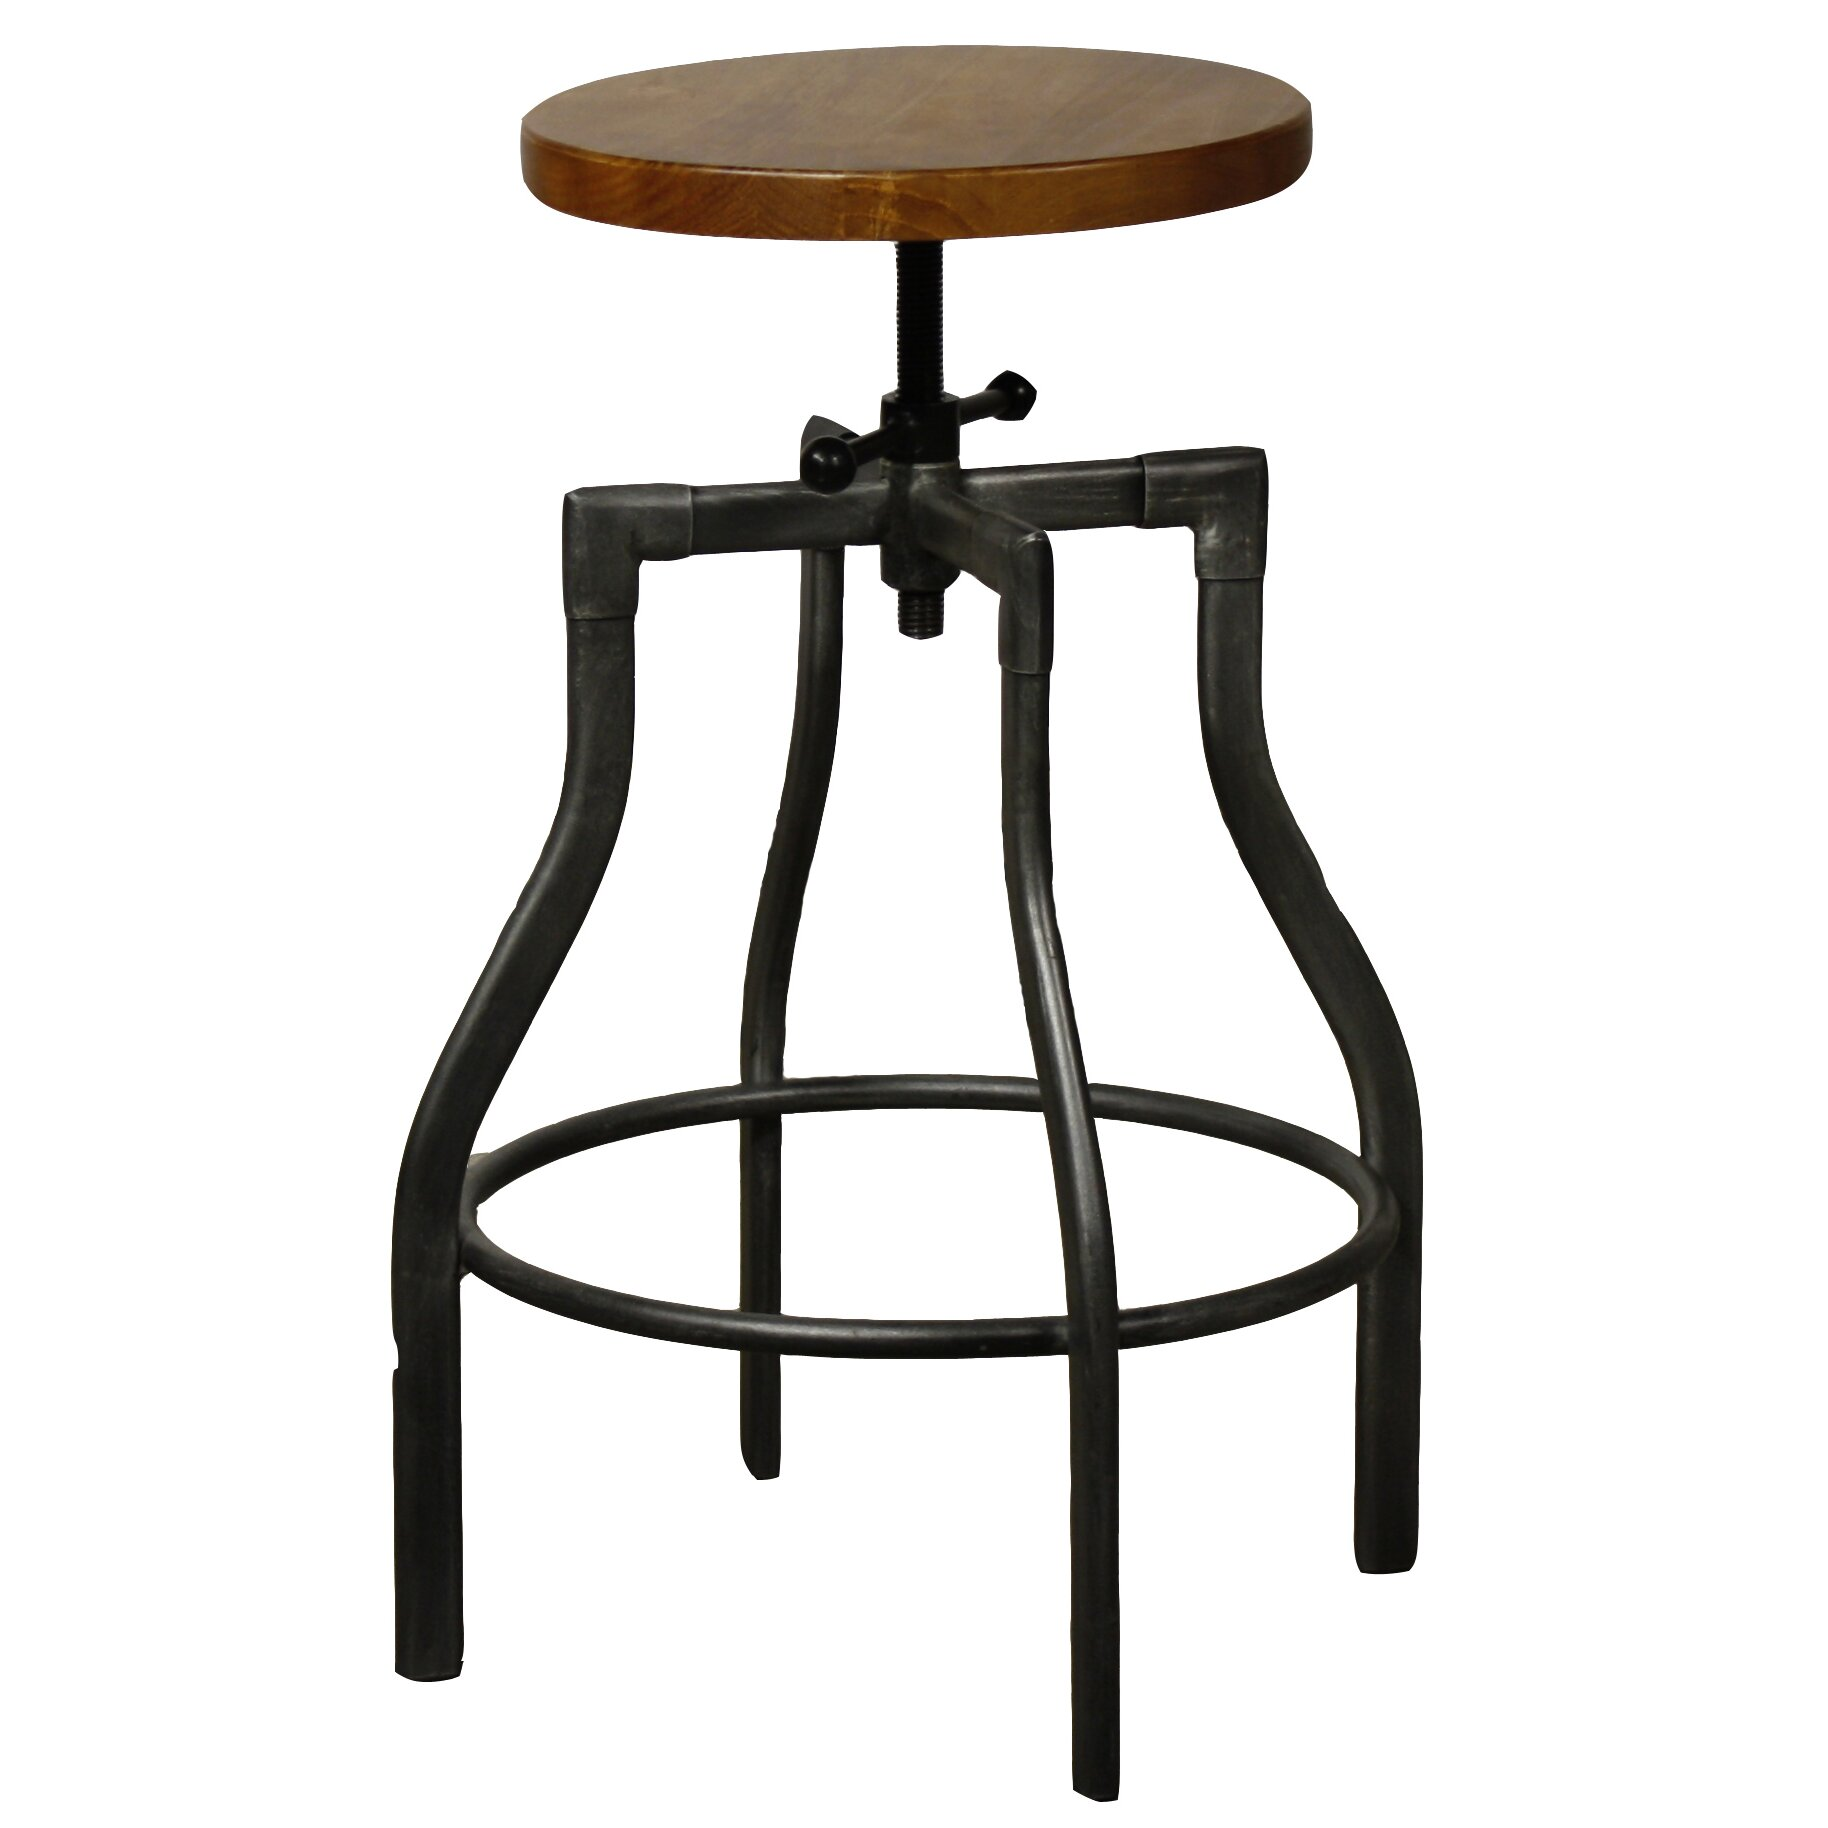 New Pacific Direct Industrial City Adjustable Height  : Industrial City Adjustable Height Bar Stool 958616 from www.wayfair.com size 1828 x 1828 jpeg 178kB